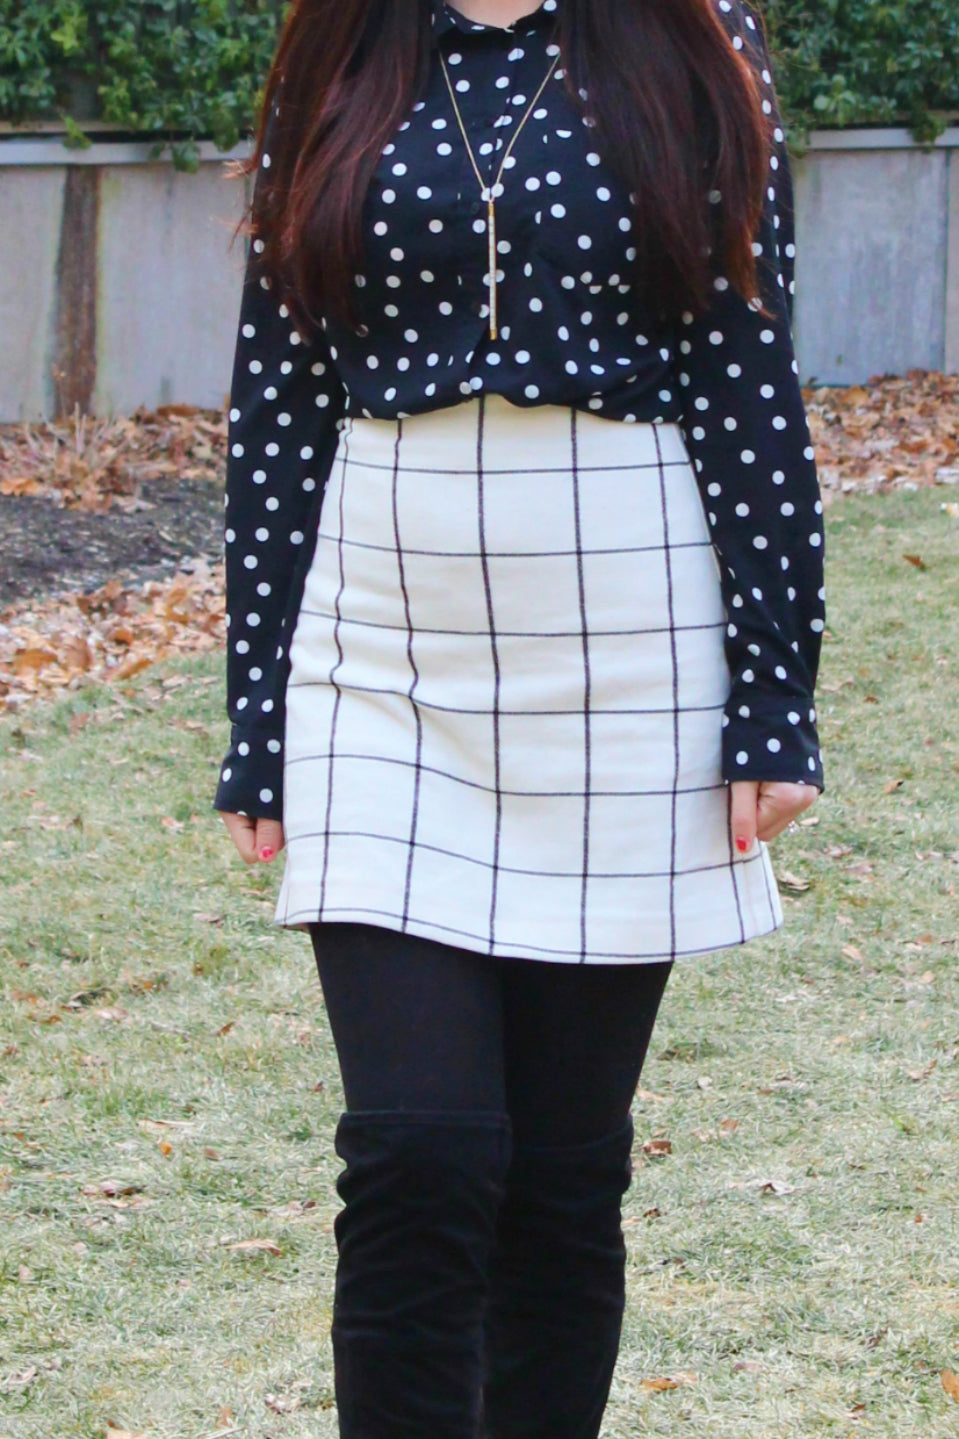 Black and White Pattern Mix - 7